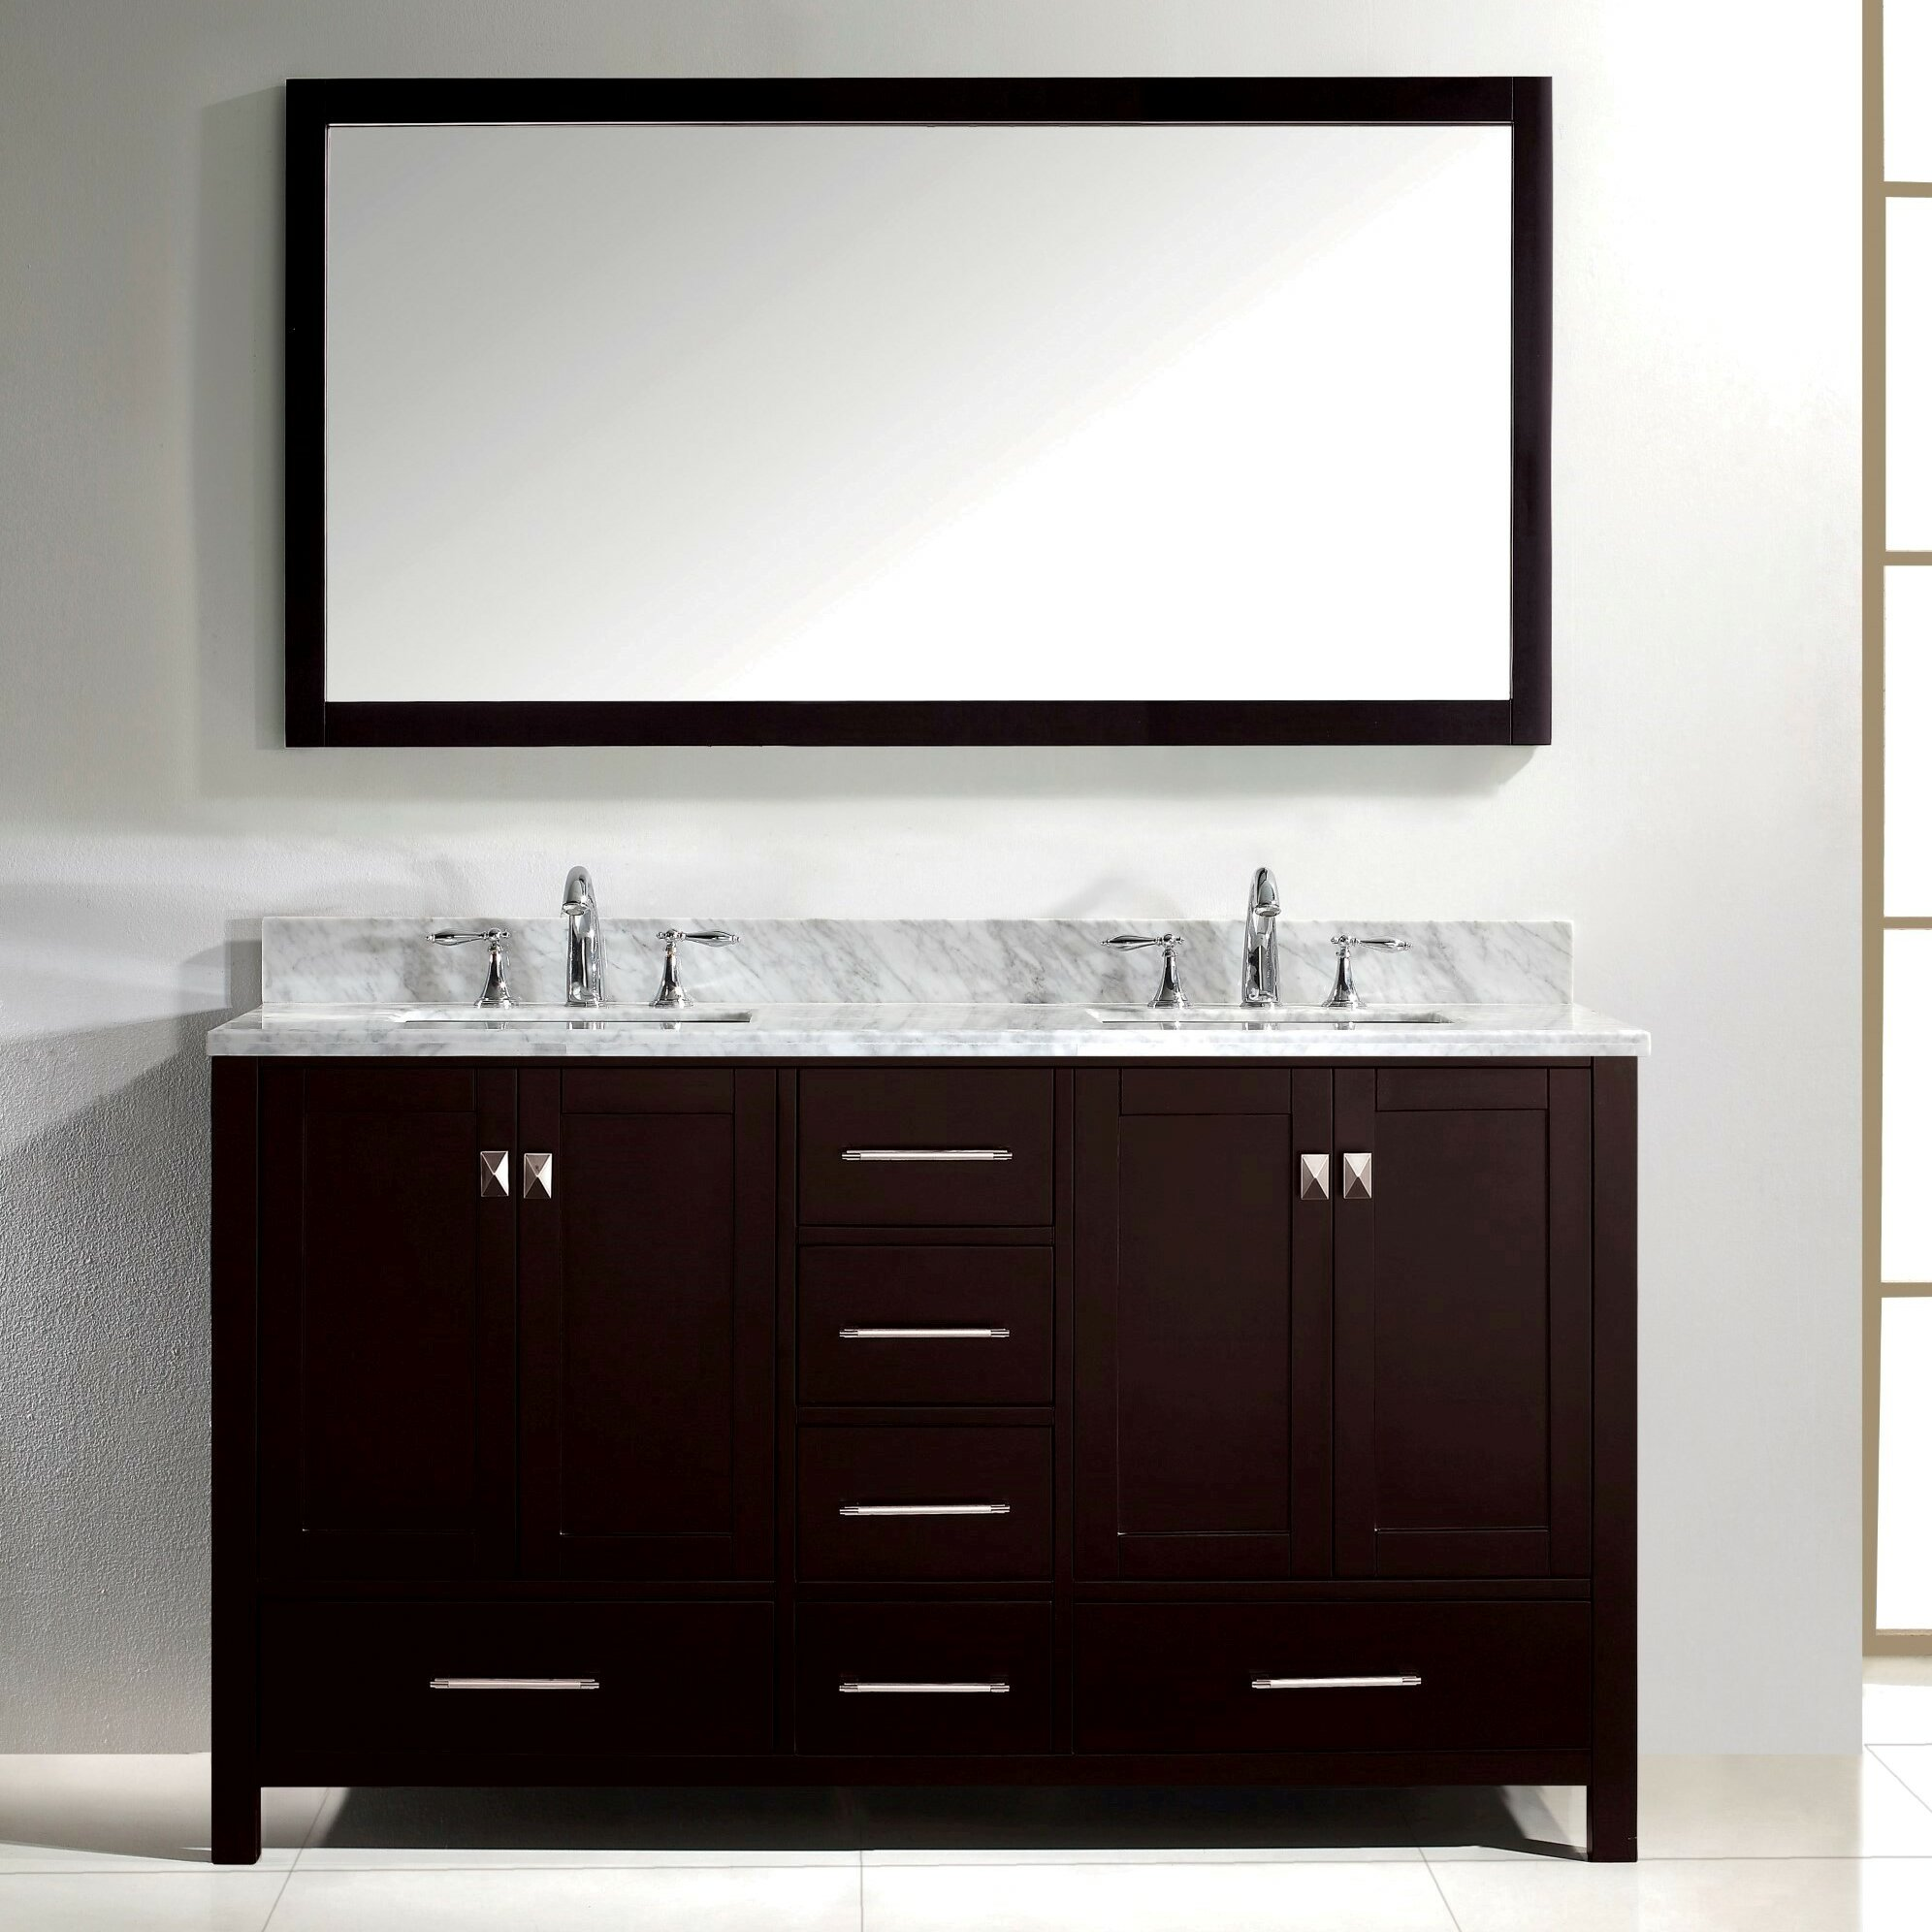 Virtu Caroline Avenue 60 amp quot  Double Bathroom Vanity Set with Carrara White Top and Mirror. Virtu Caroline Avenue 60 quot  Double Bathroom Vanity Set with Carrara